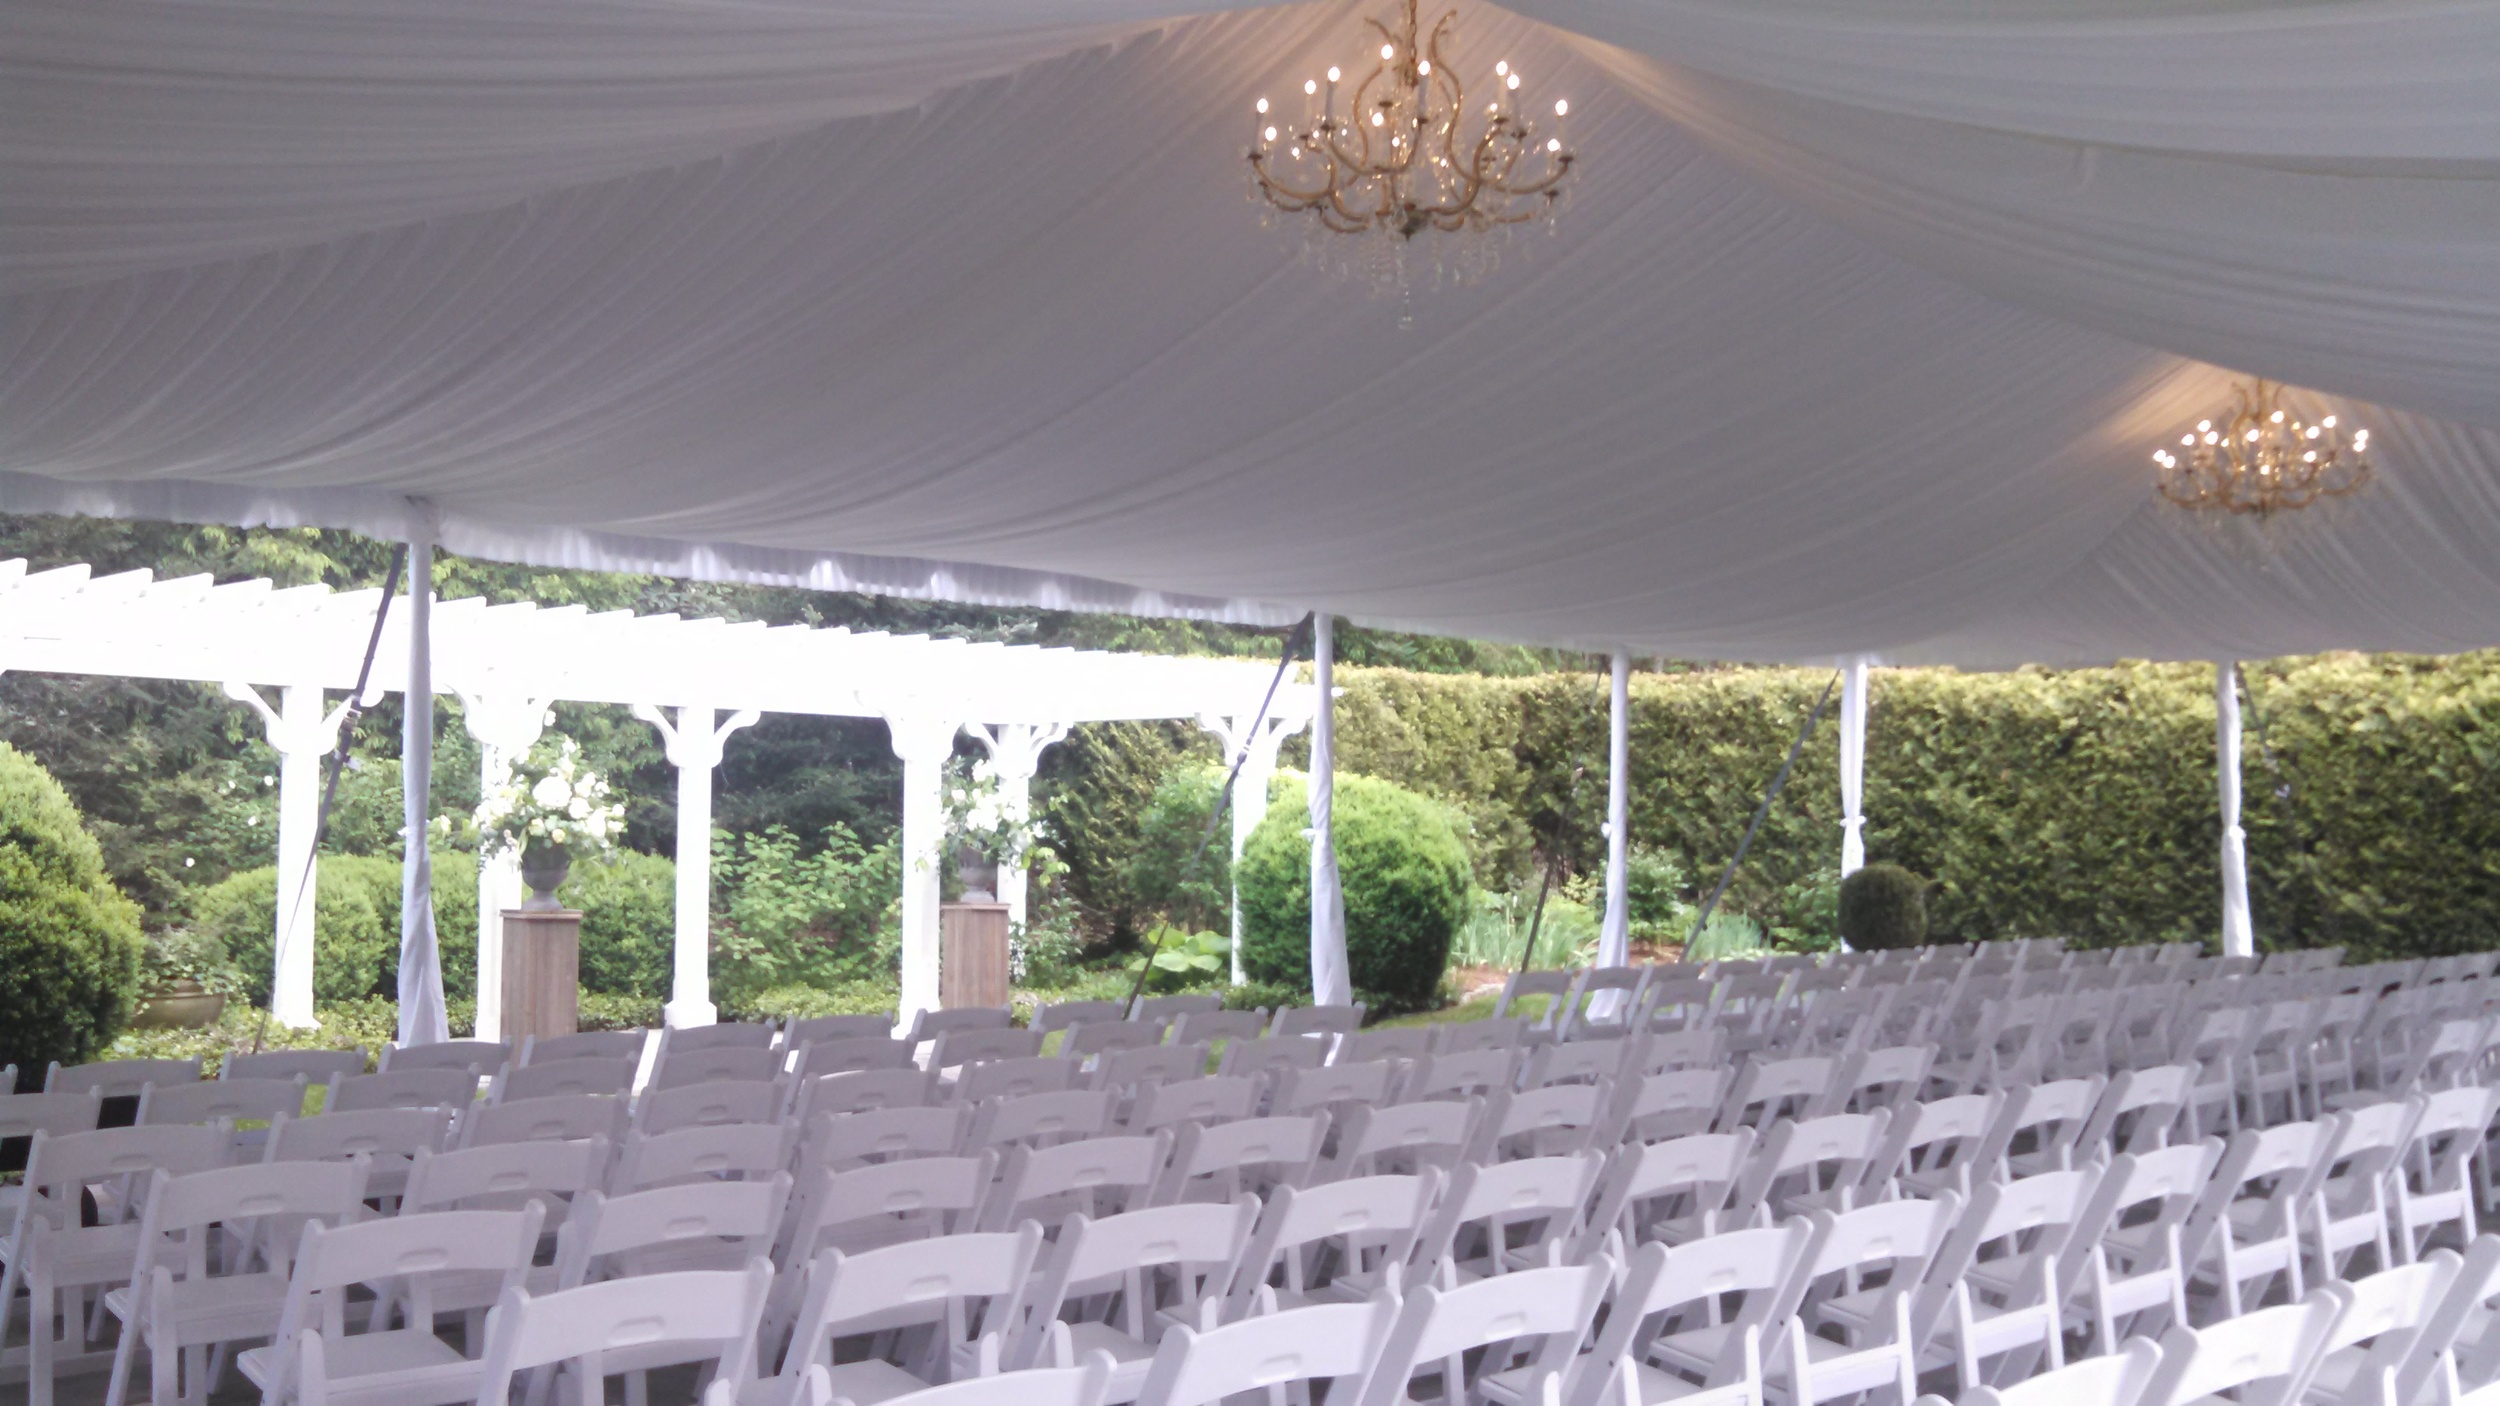 A view of the Ceremony location! This is just taken with my phone to give you an idea of the setting.